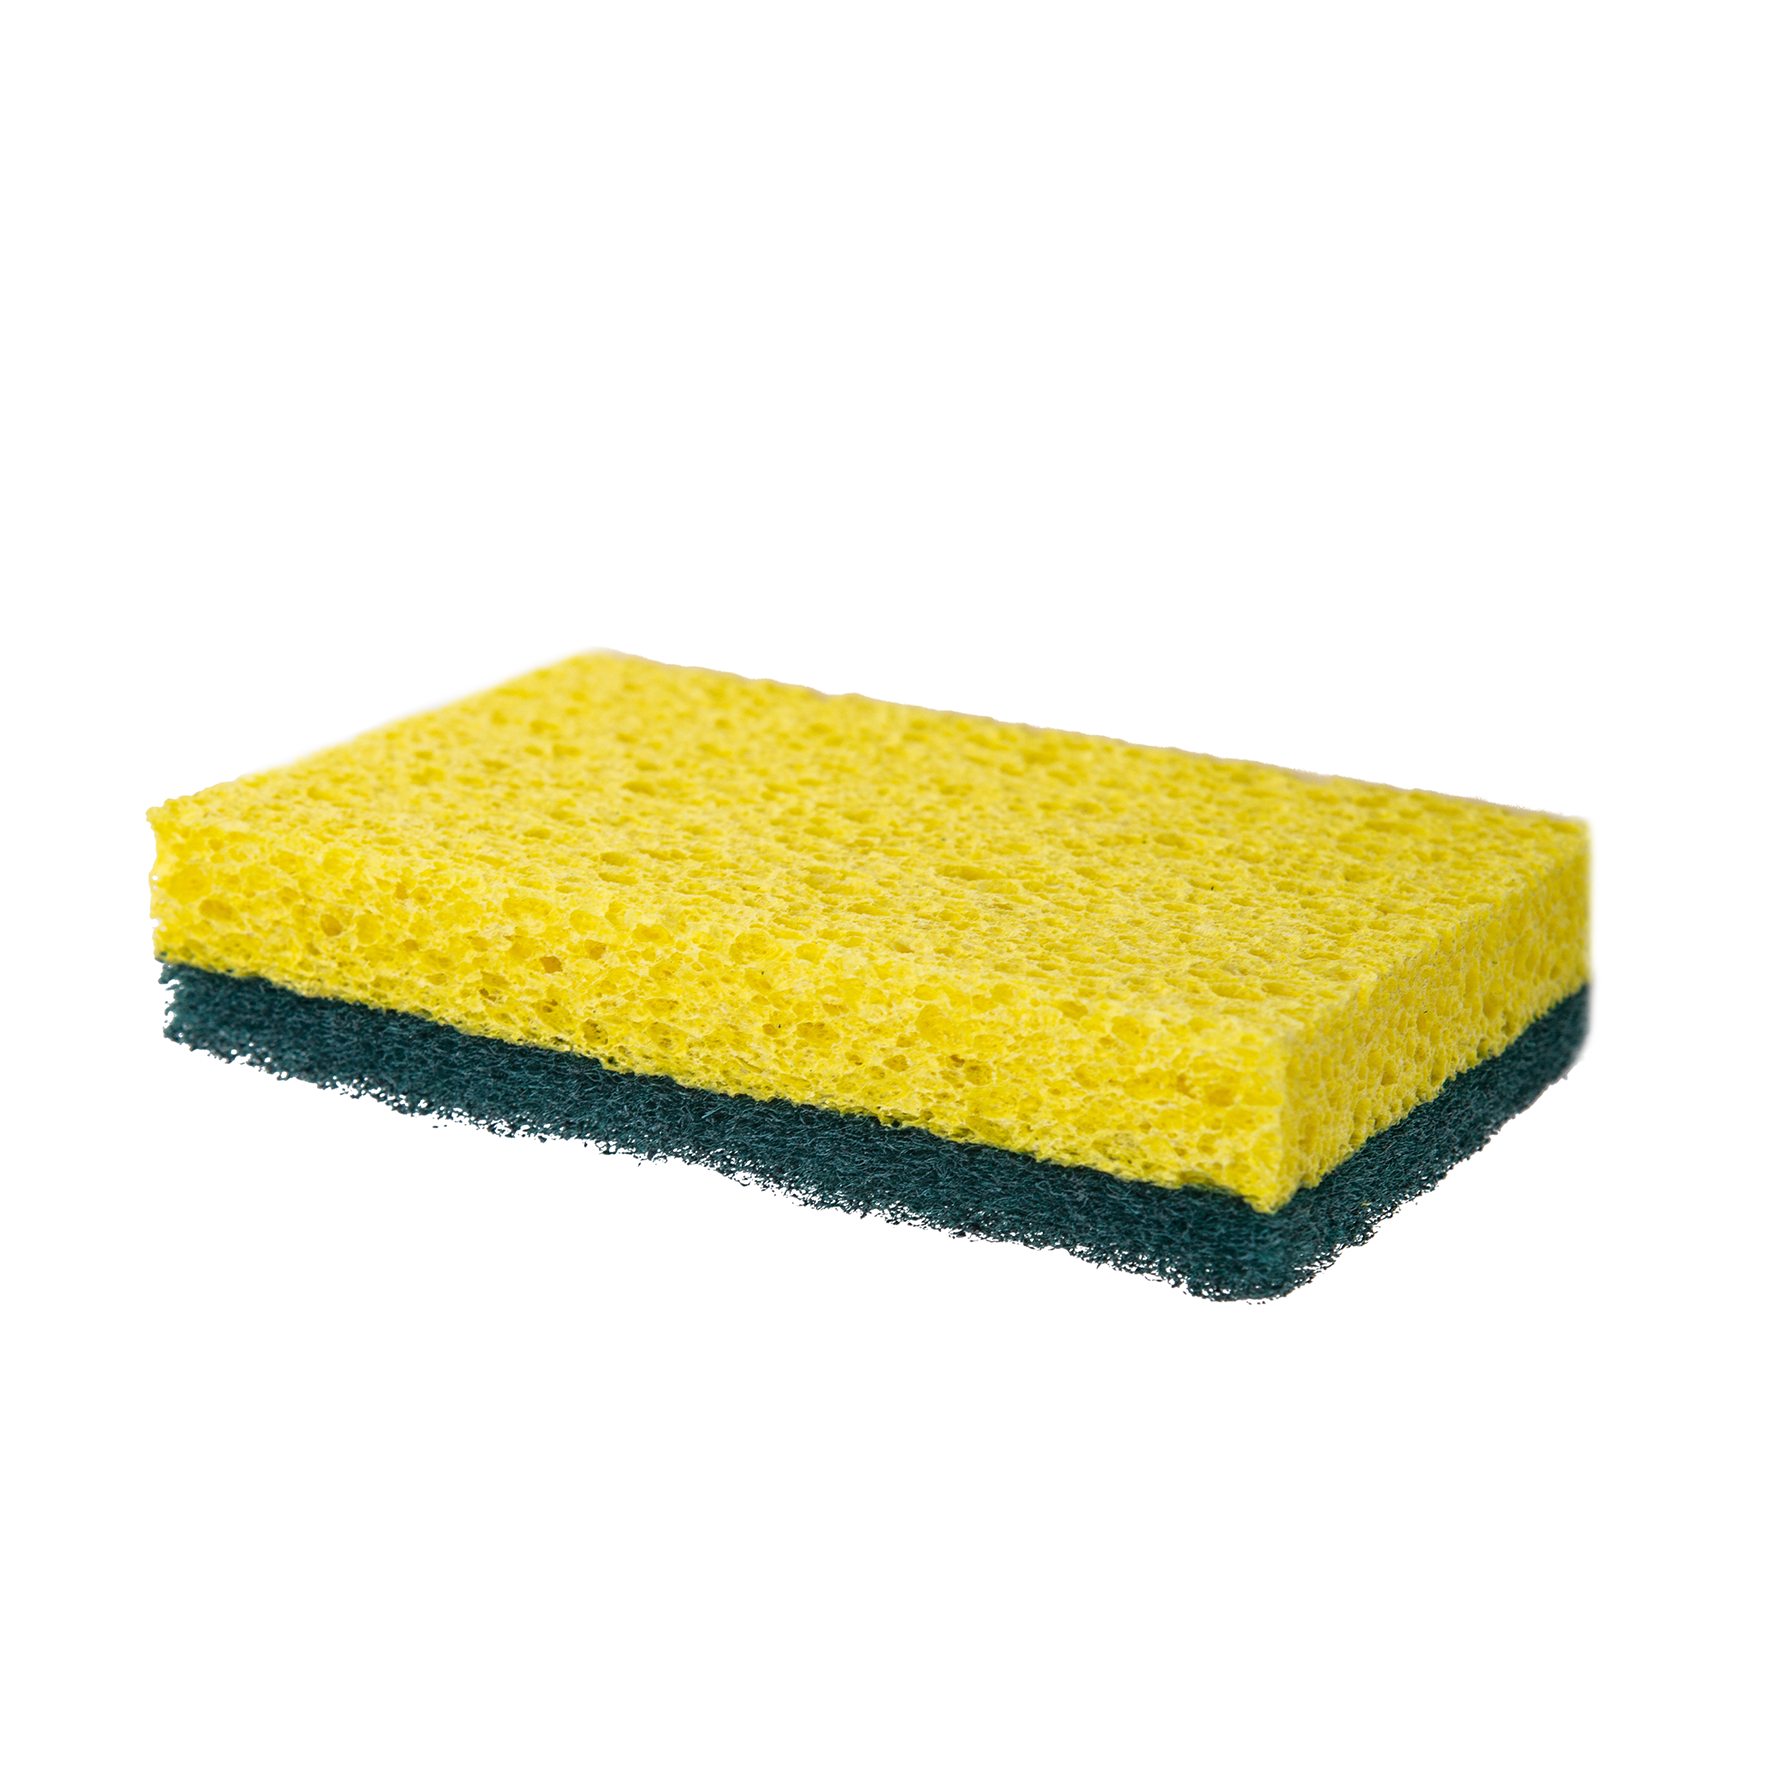 What are the characteristics of high-density sponge?